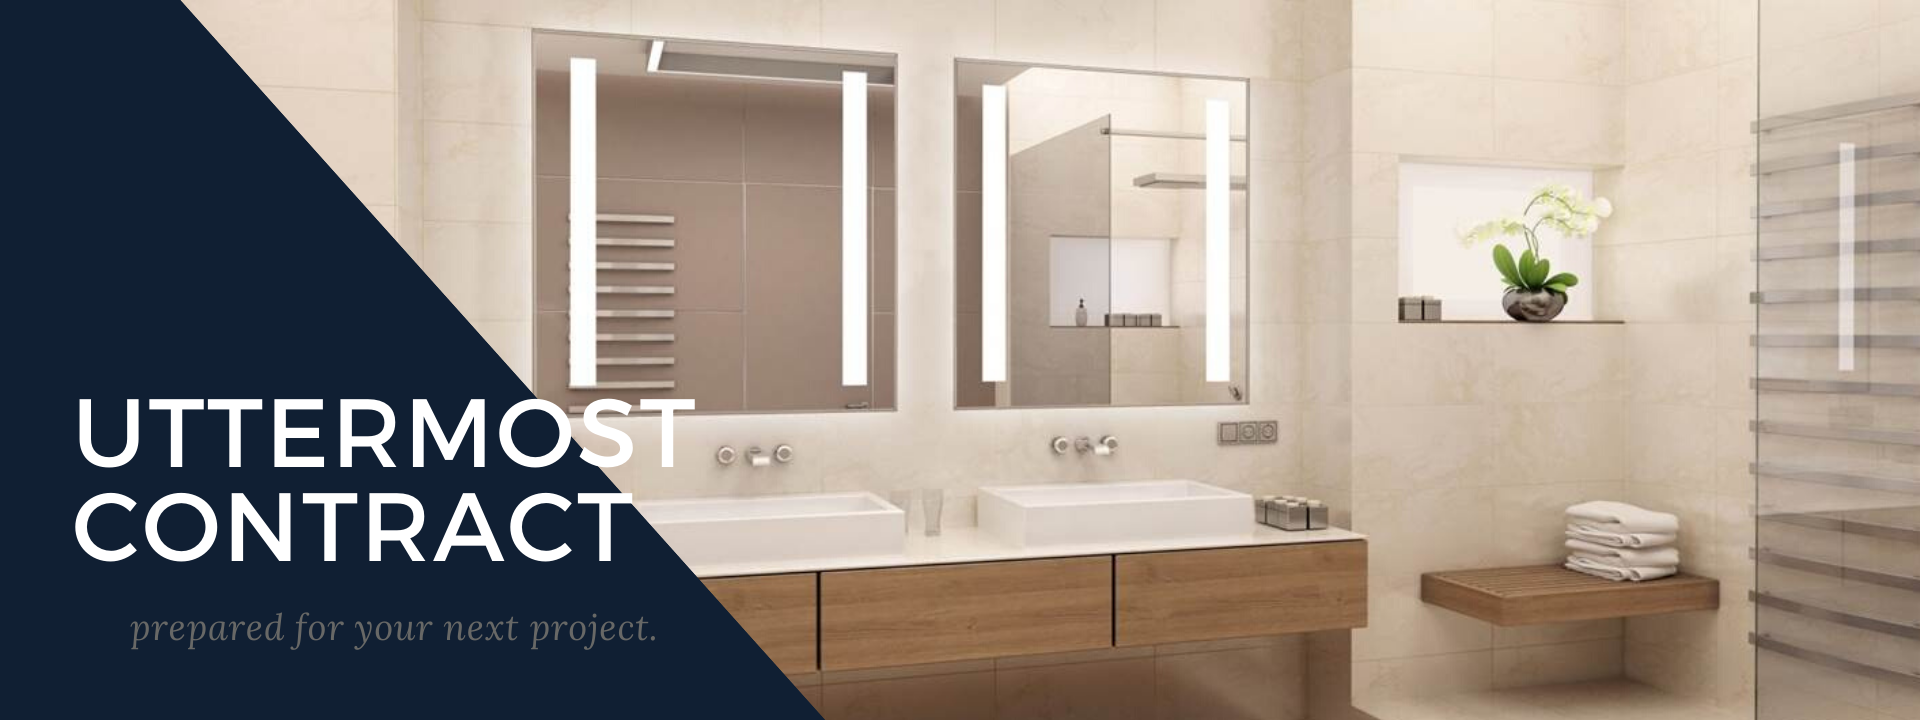 Uttermost Contract.  Prepared for your next project.  A backlit mirror is shown in a bathroom setting.